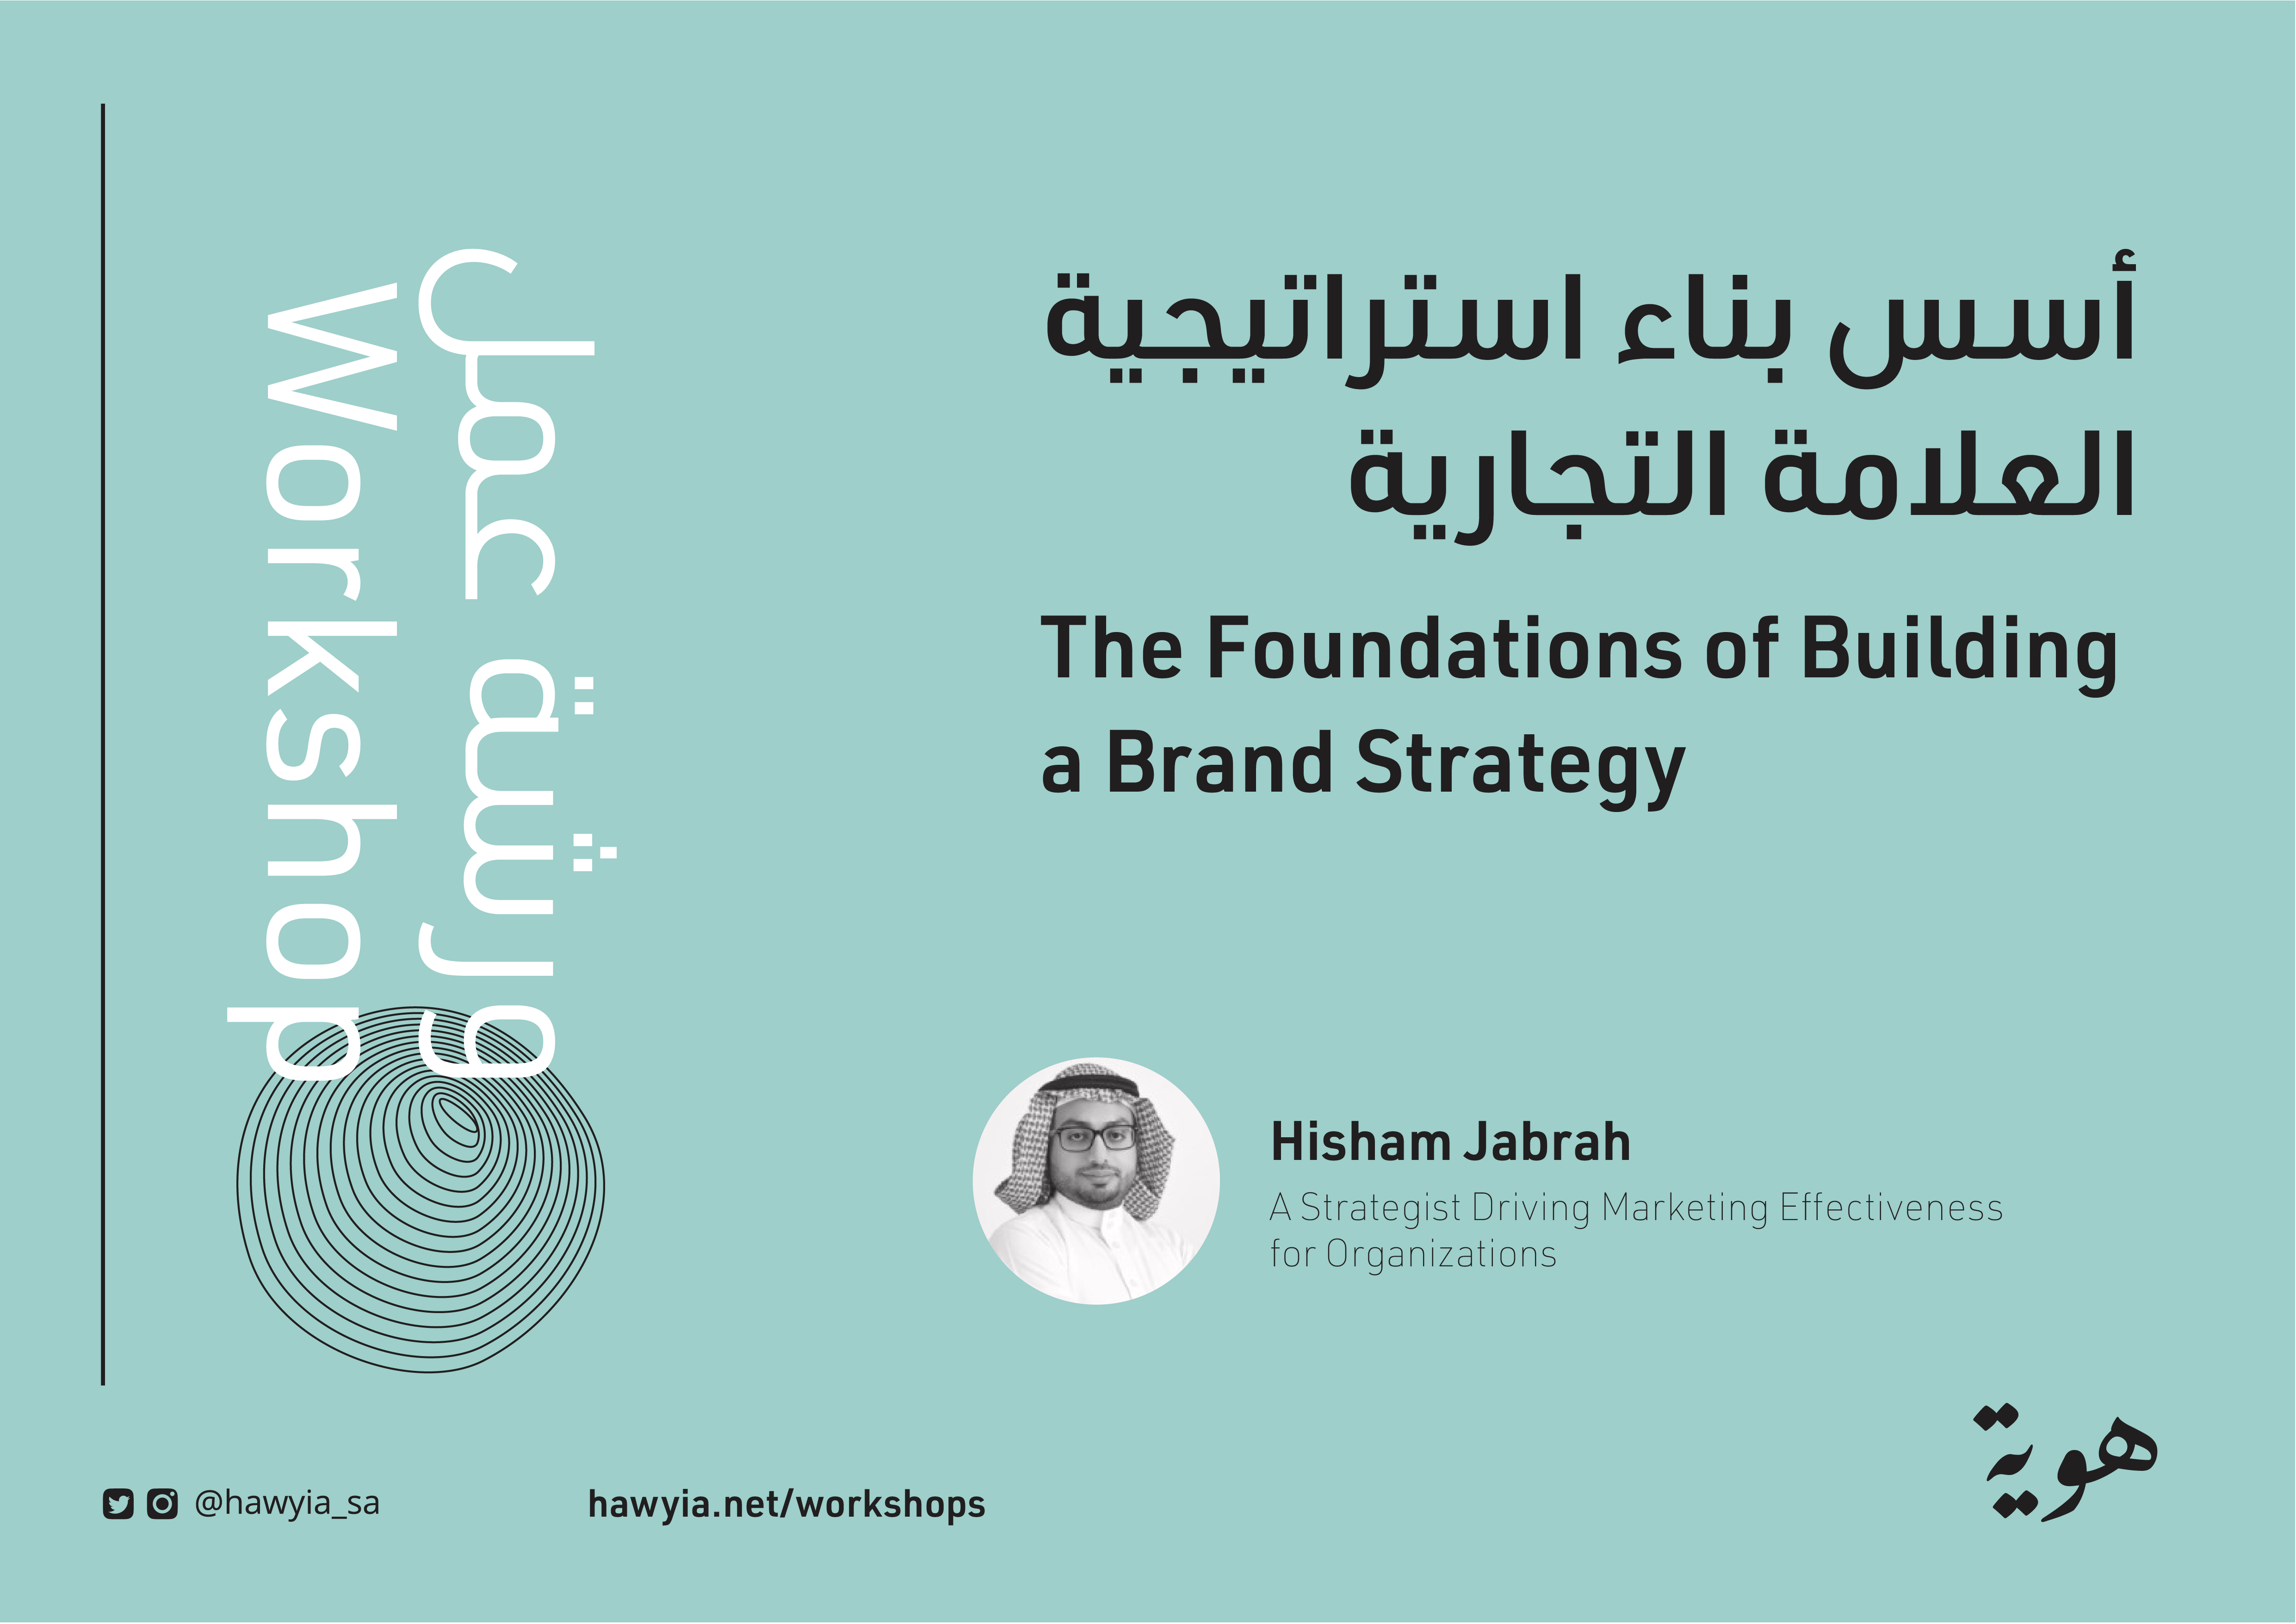 The Foundations of Building a Brand Strategy